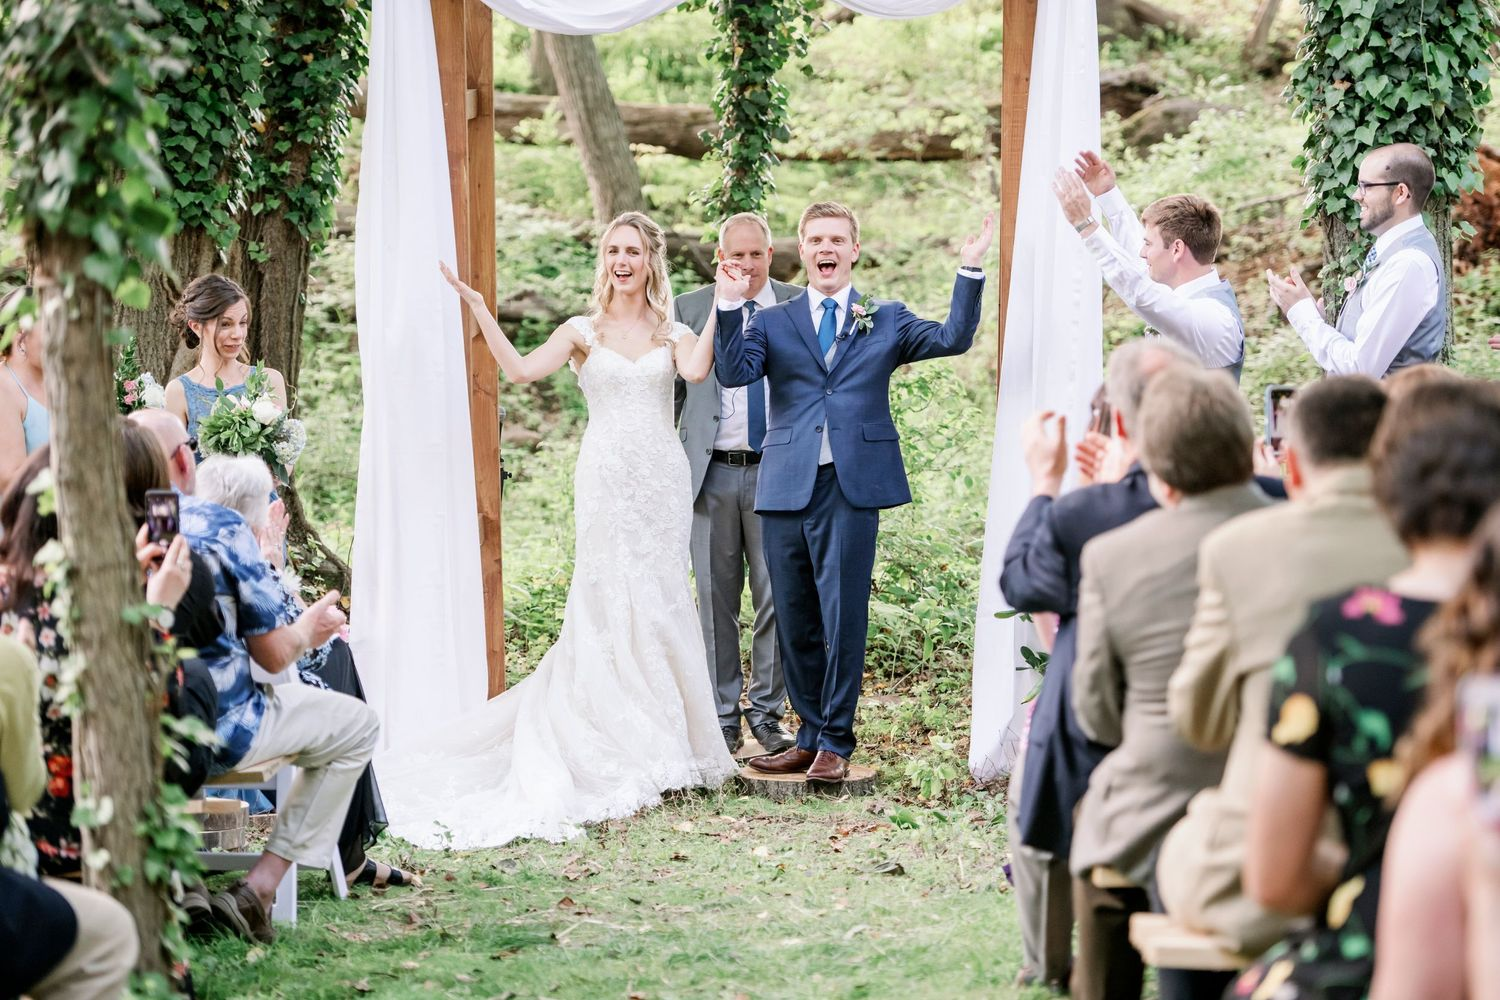 bride and groom celebrate with arms raised in their backyard farm wedding in woods